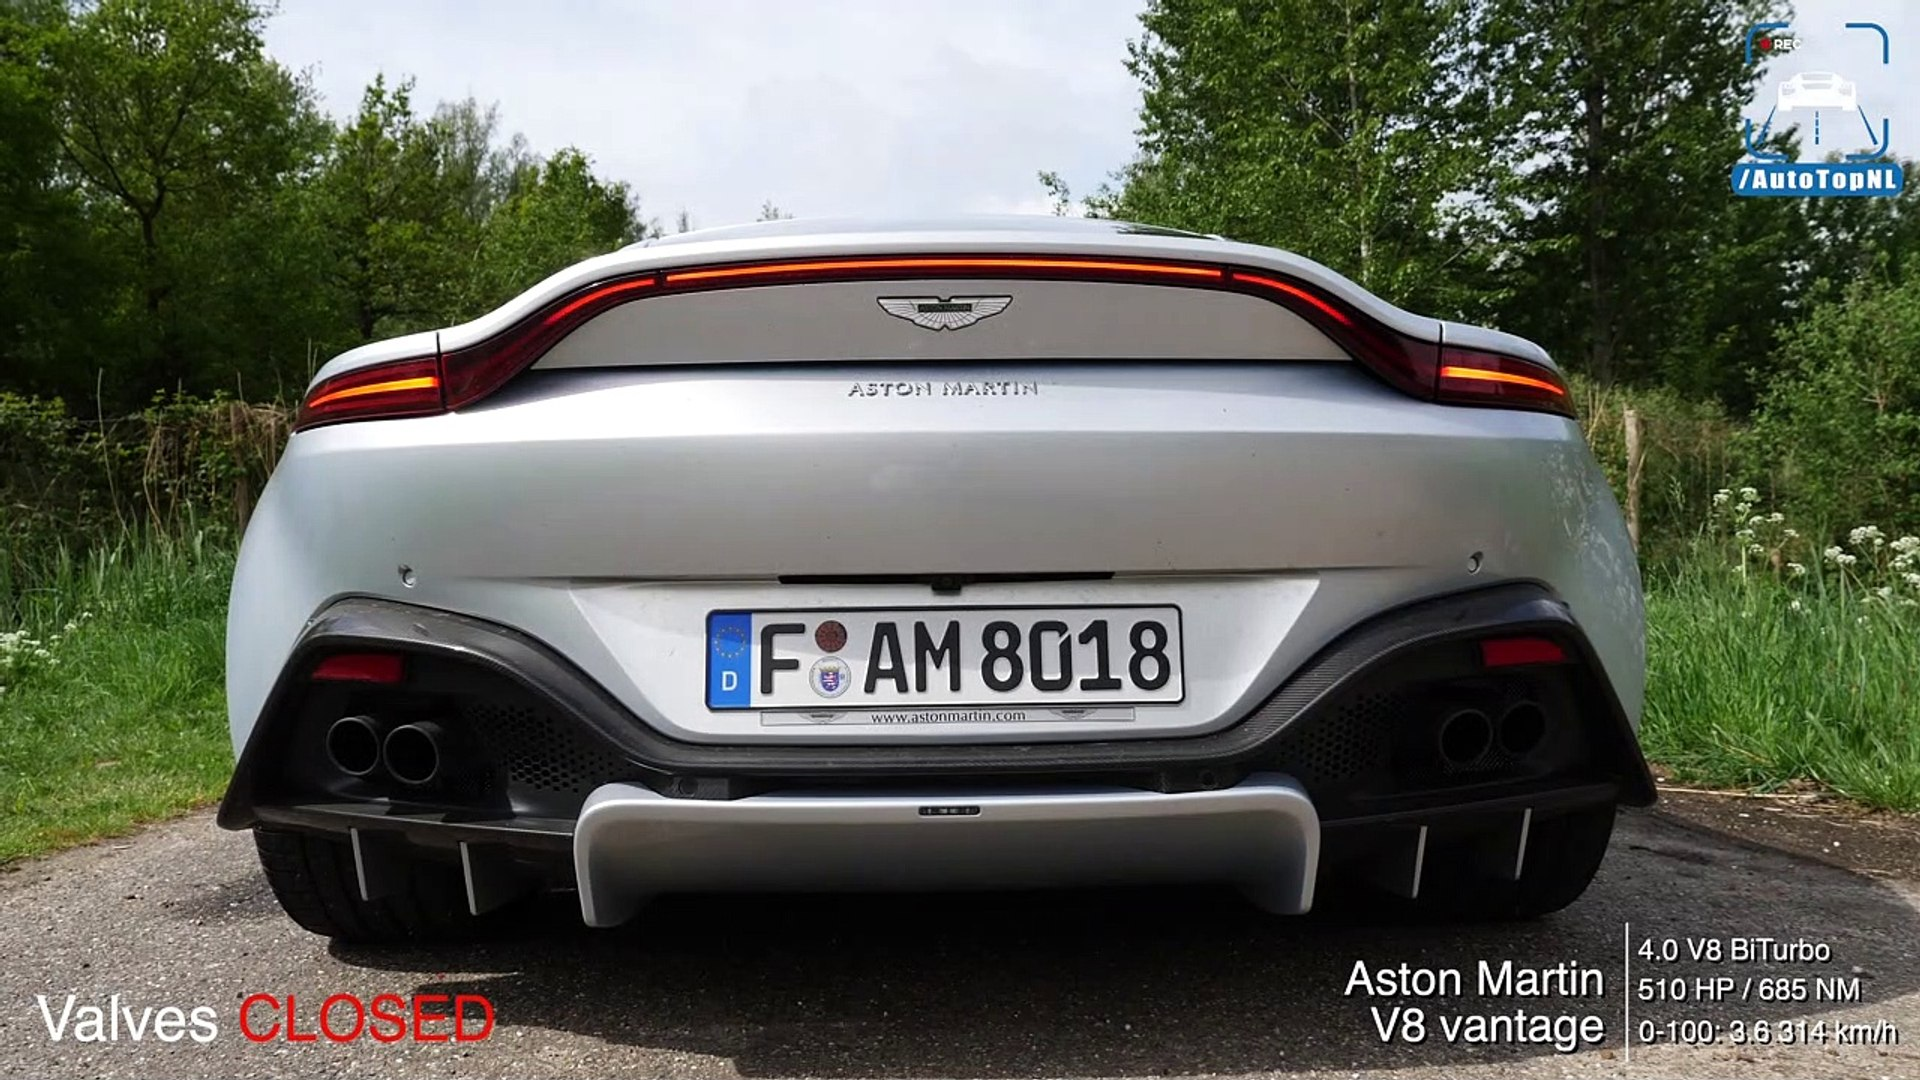 New Aston Martin Vantage V8 Biturbo Loud Exhaust Sound Tunnel Revs Onboard By Autotopnl Dailymotion Video